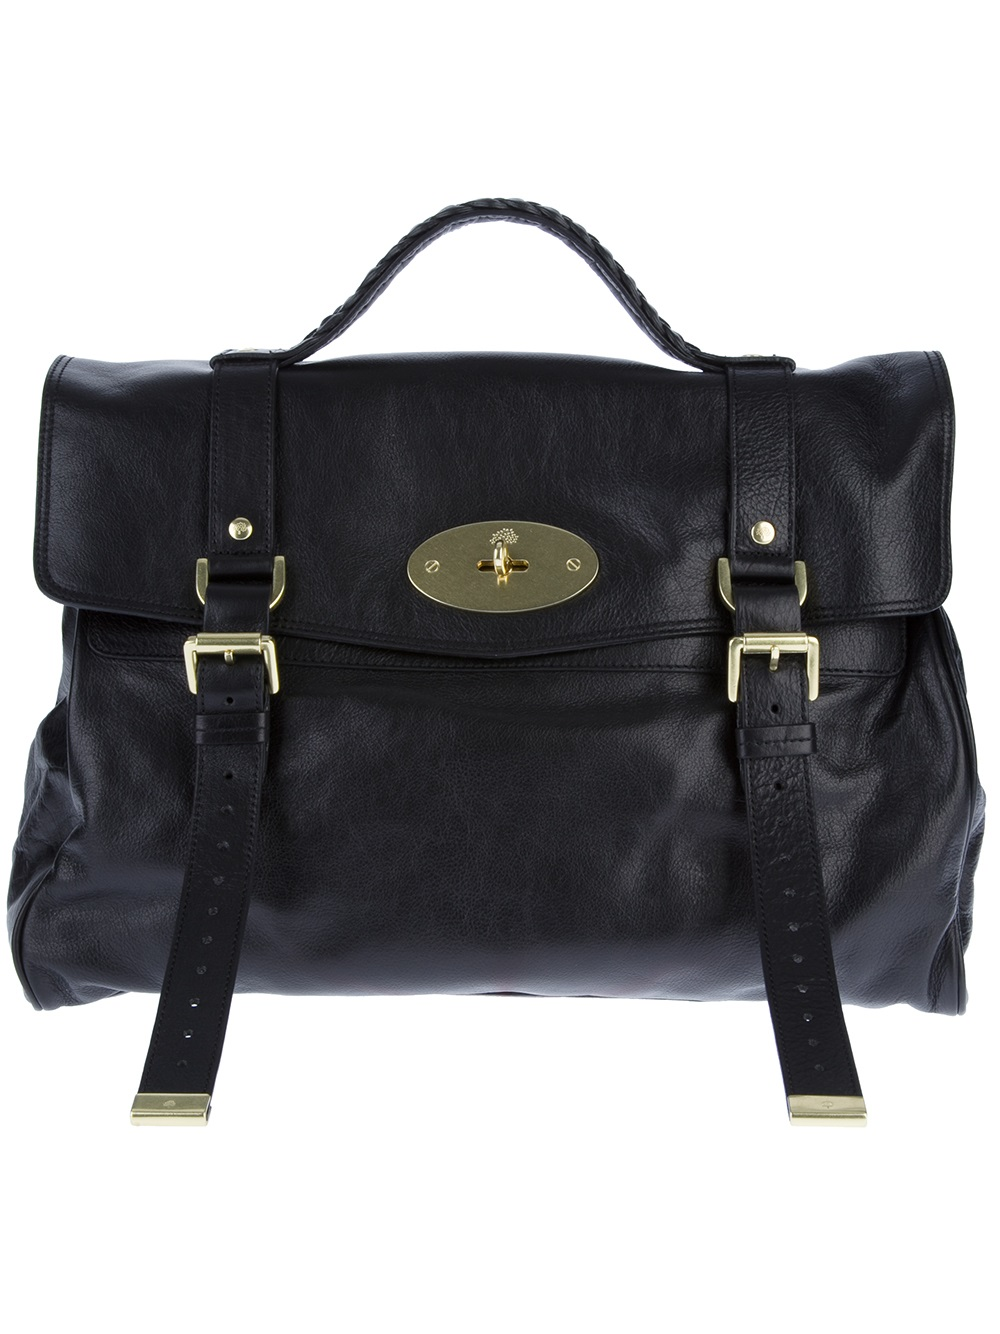 Lyst - Mulberry Oversize Alexa Tote in Black 20b75a398d9df